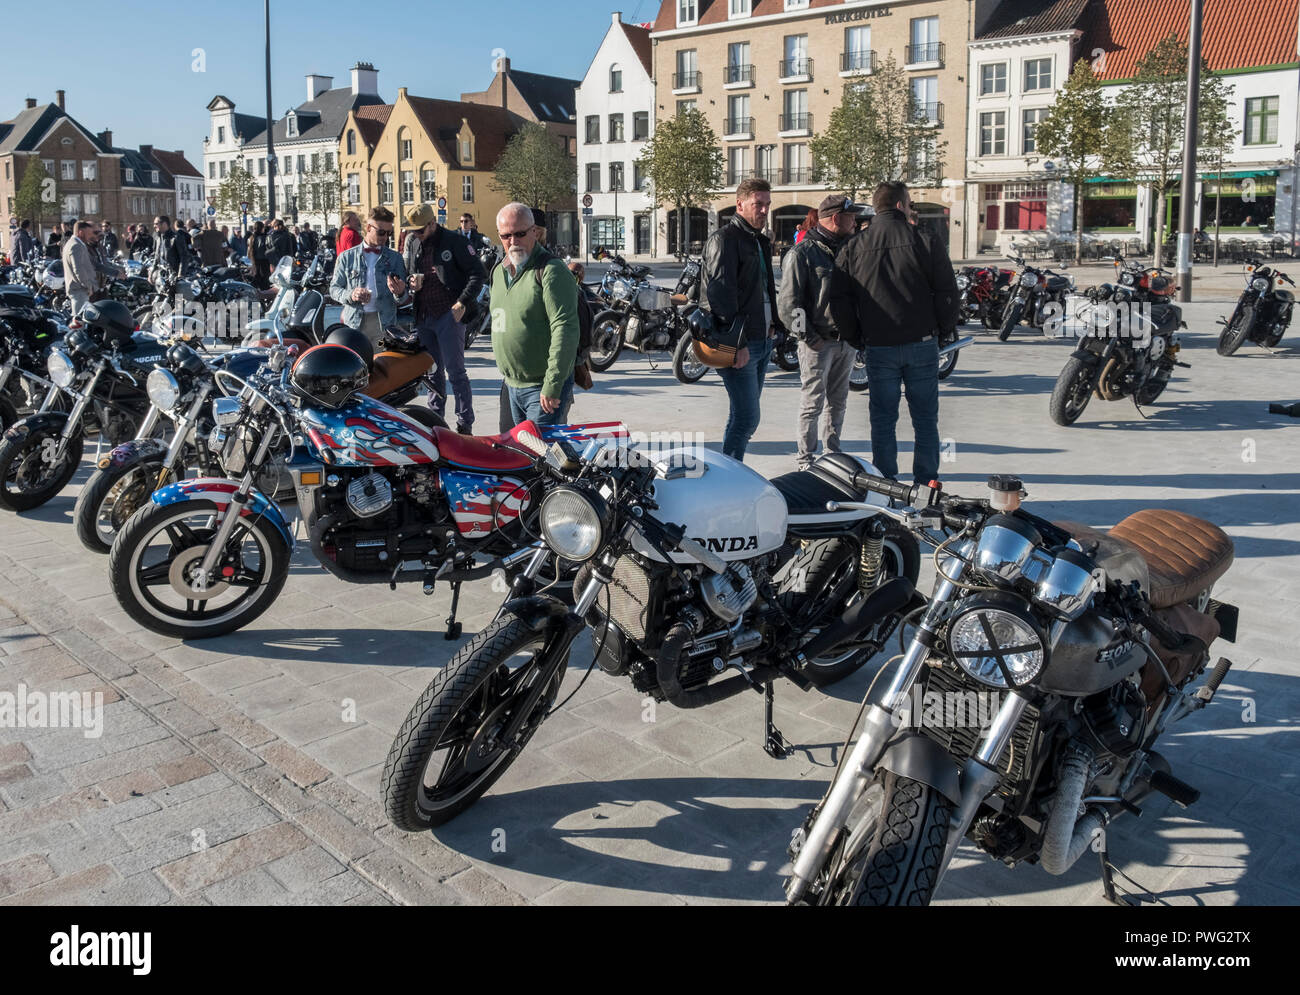 Motorcycle enthusiasts gather on Het Zand Square to admire bikes on display, Bruges, Flanders, Belgium - Stock Image